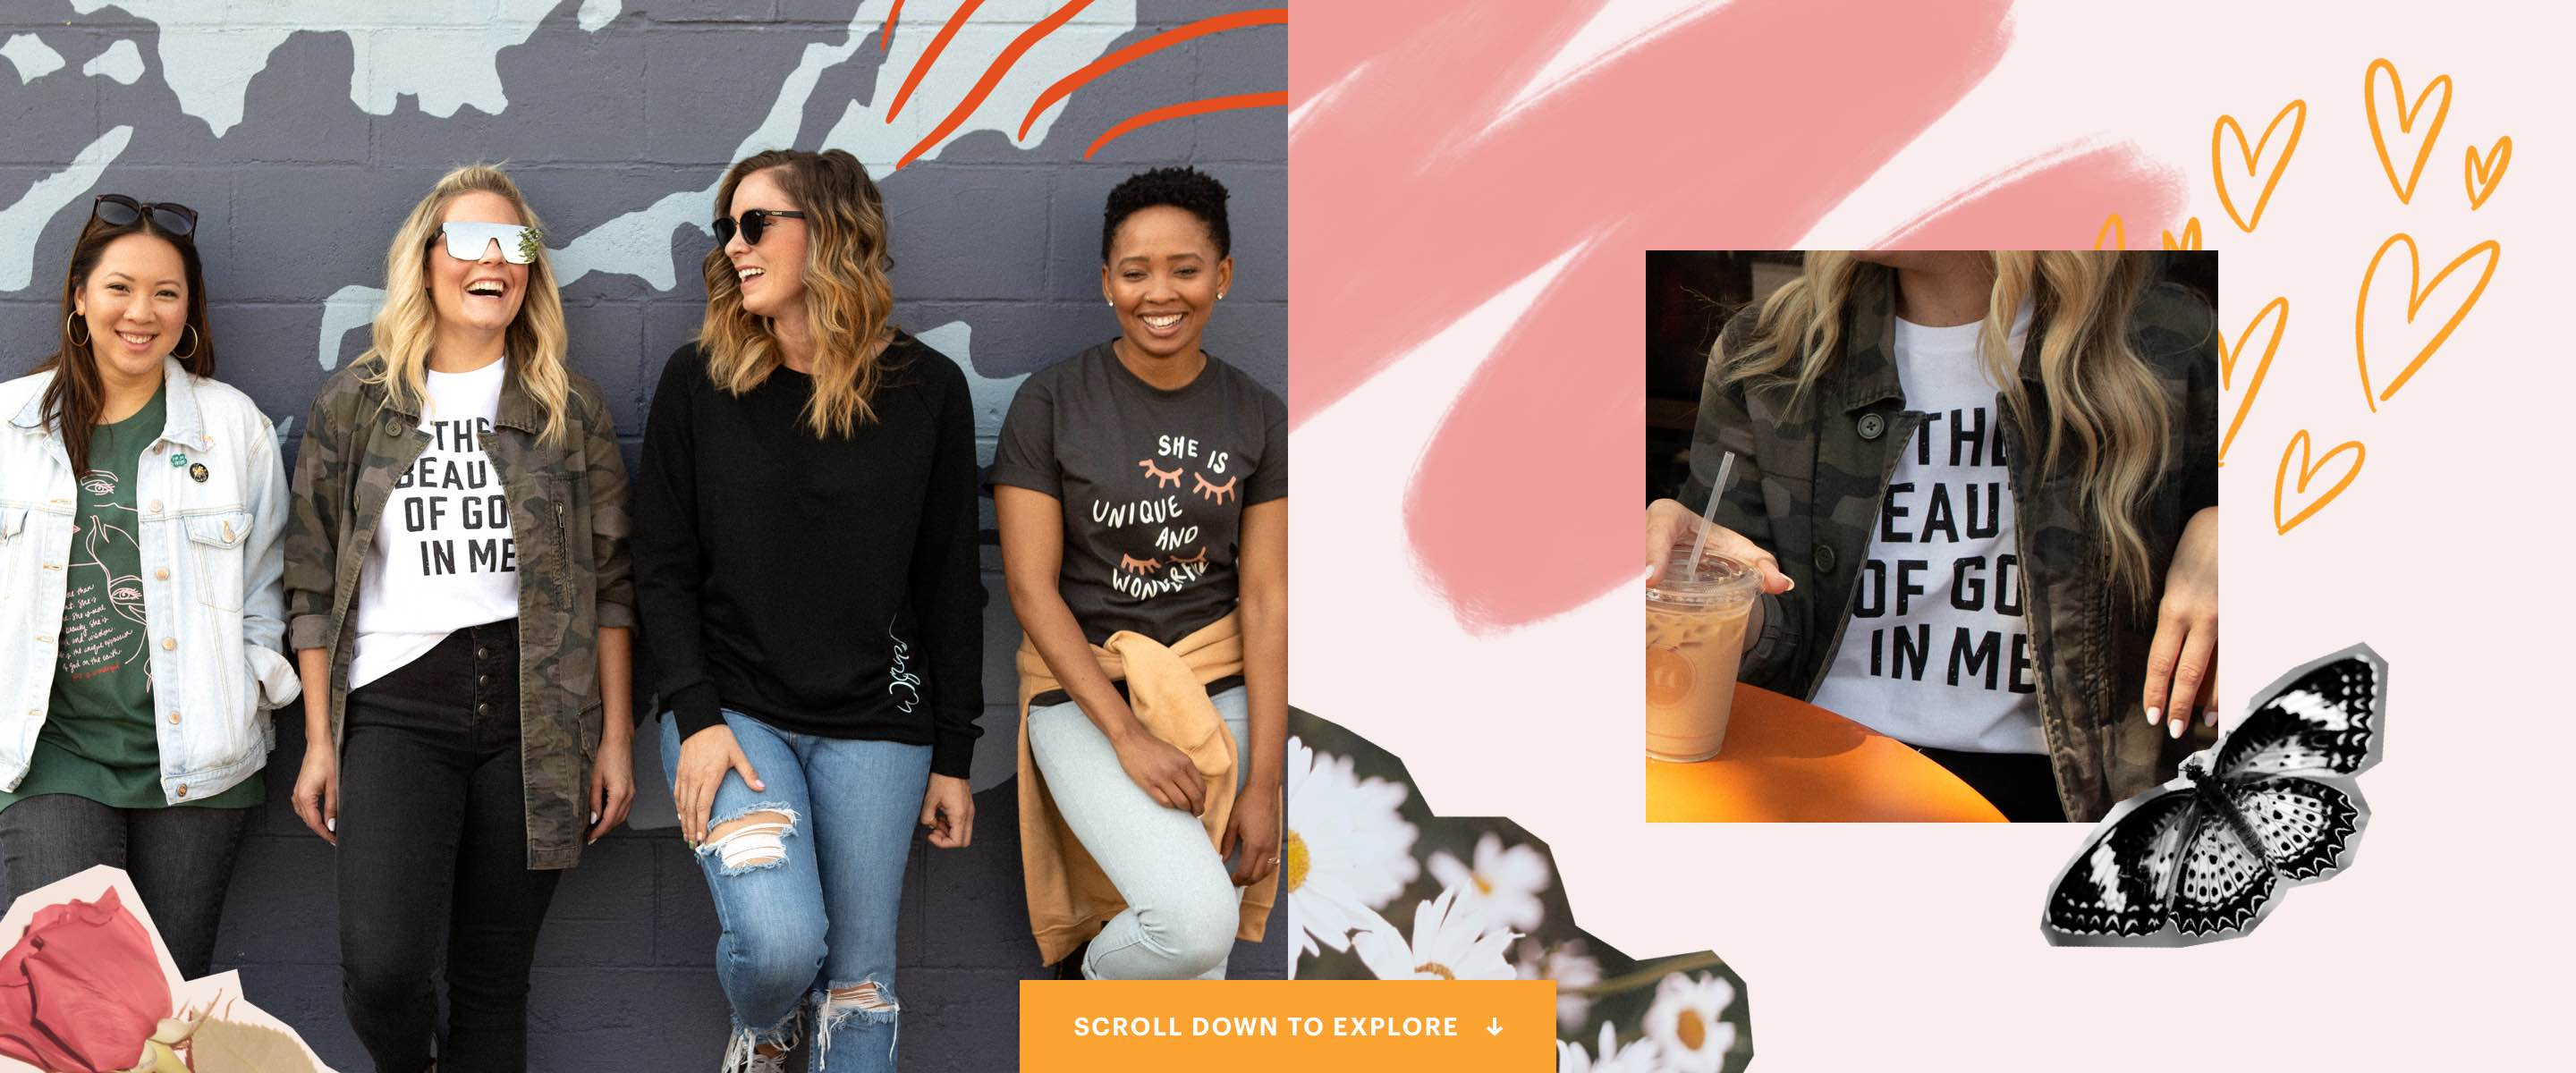 Introducing the new - Bethel Women's Line - Celebrate the wonder of who God made you to be.